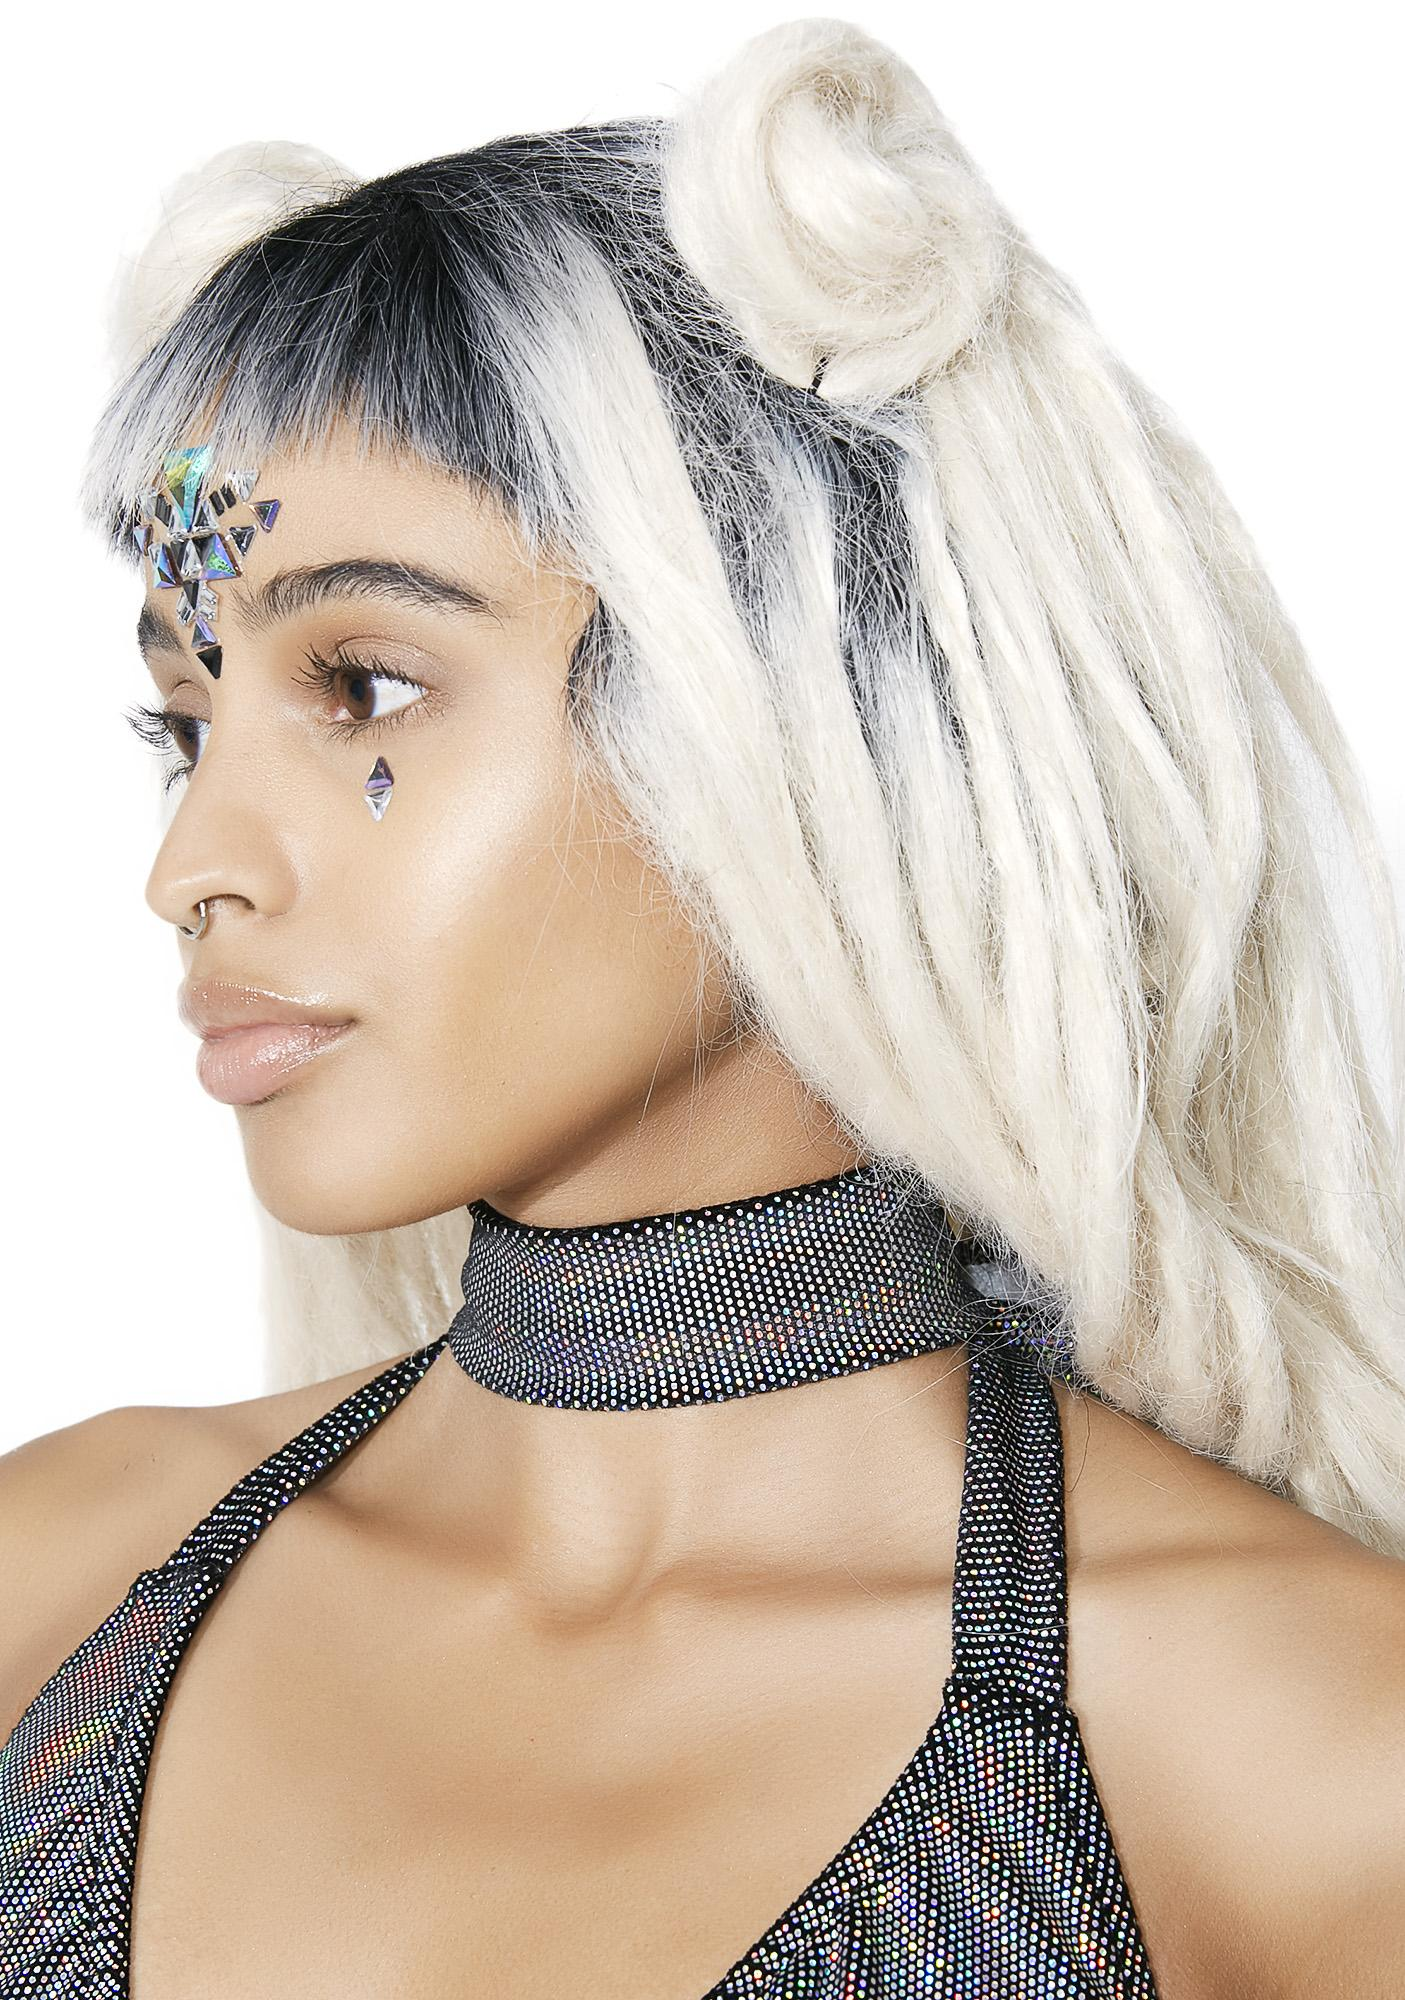 J Valentine Star Scouter Holographic Choker